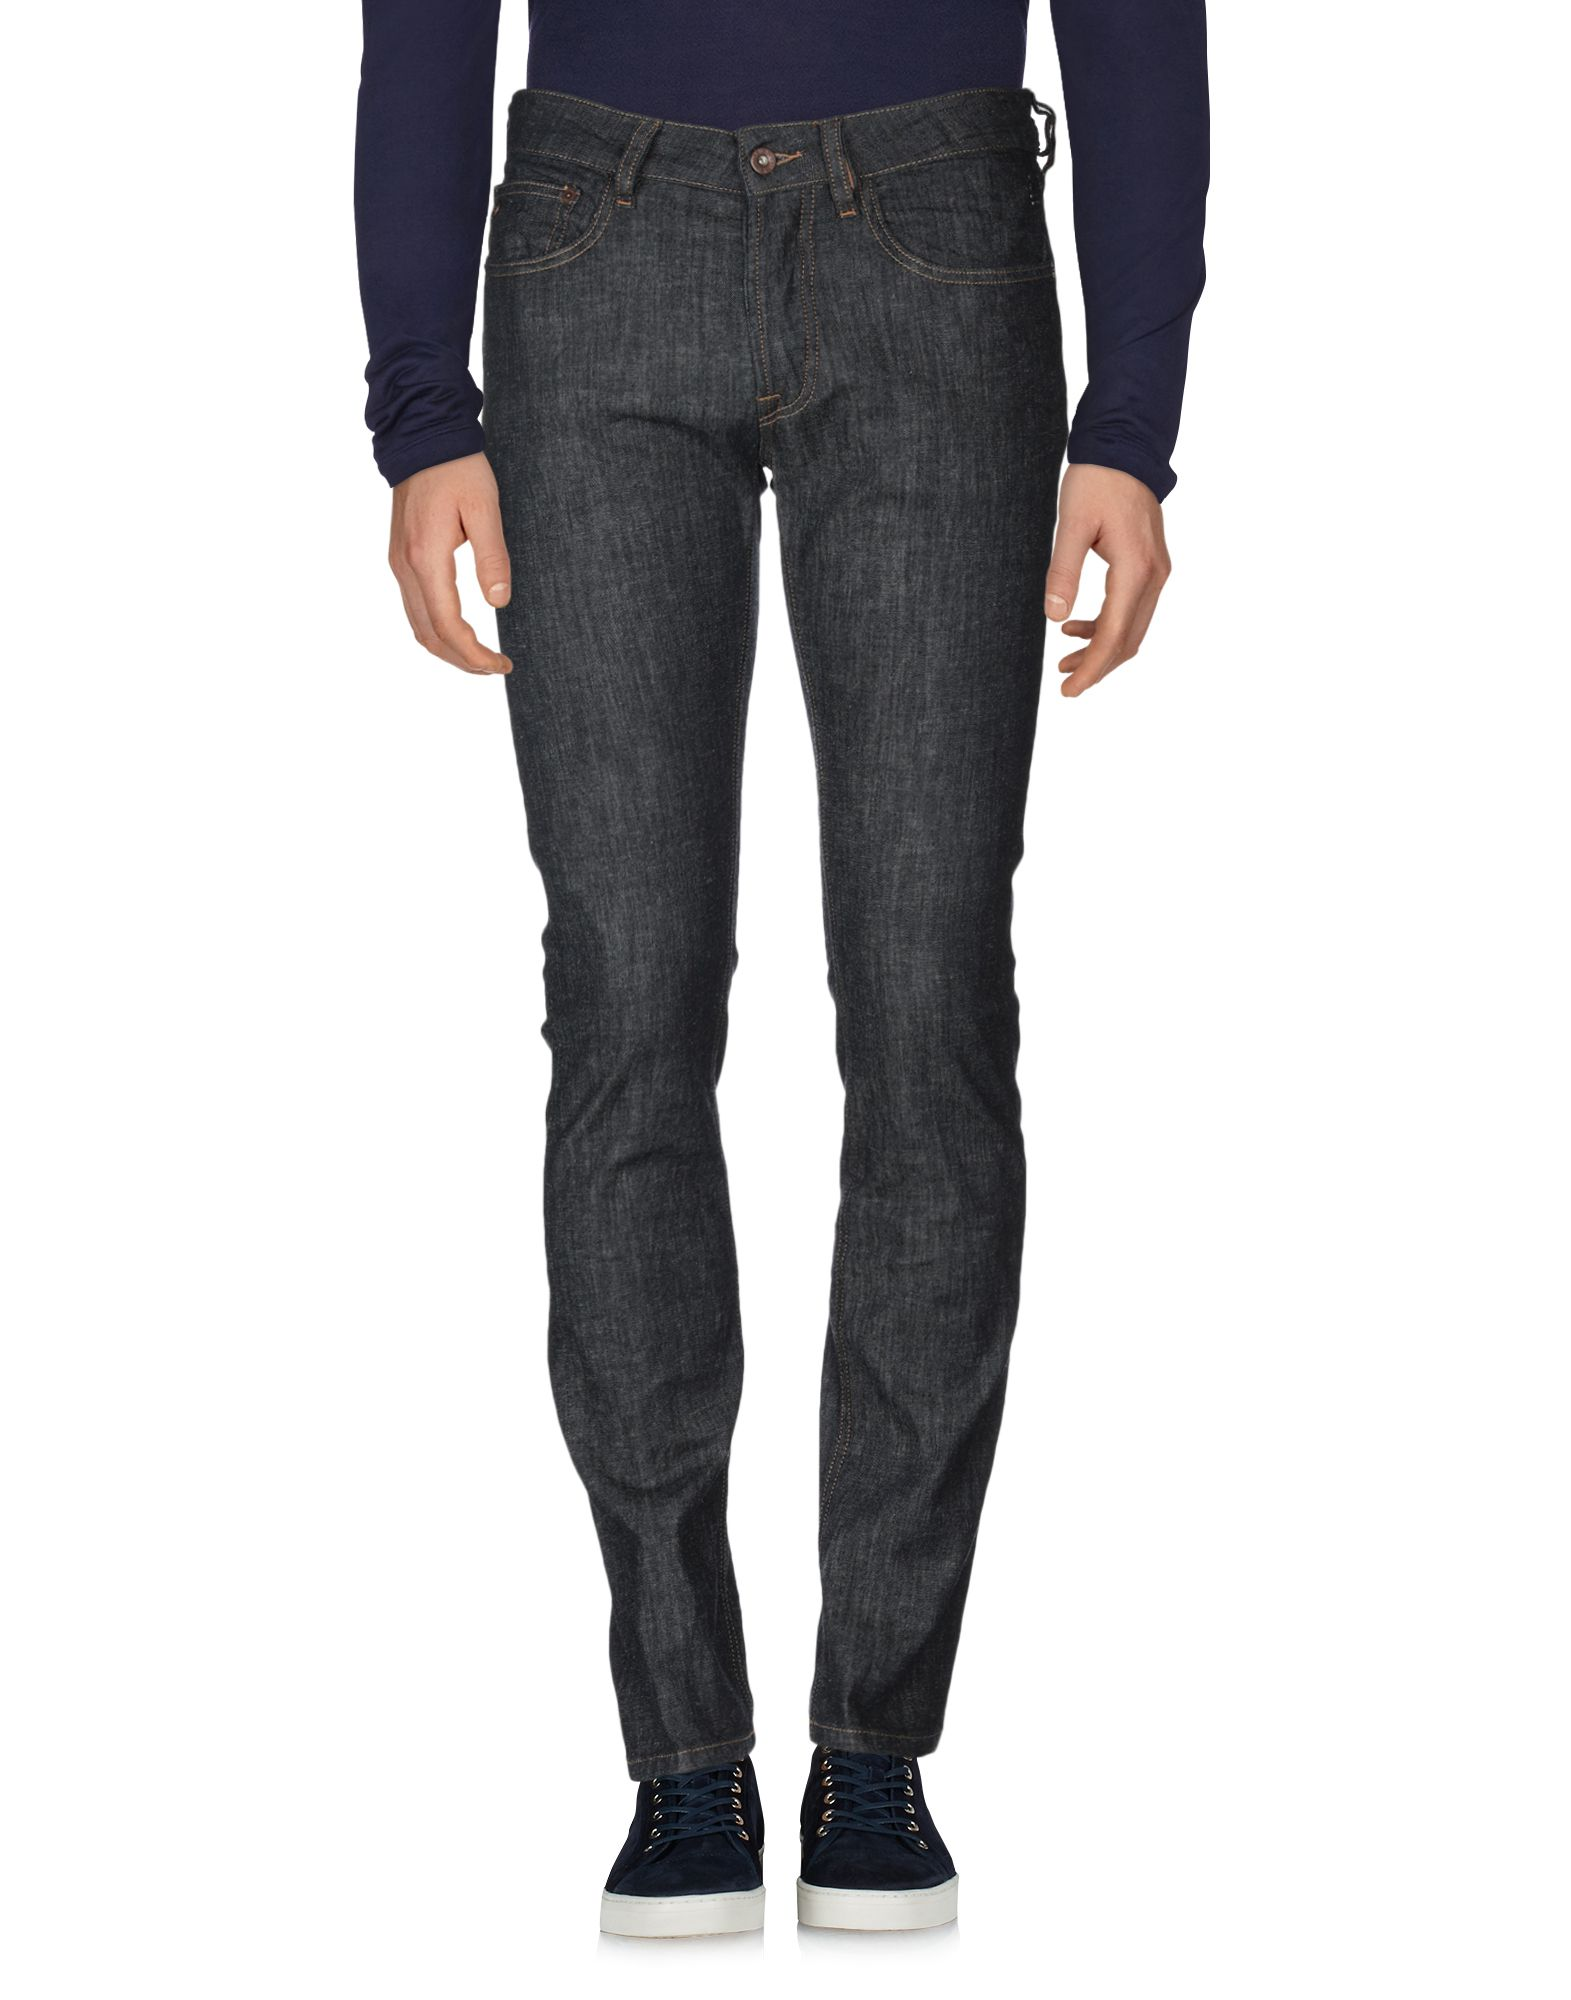 Pantaloni Jeans Uniform Uomo Uomo Uniform - 42679950VW 4b302a